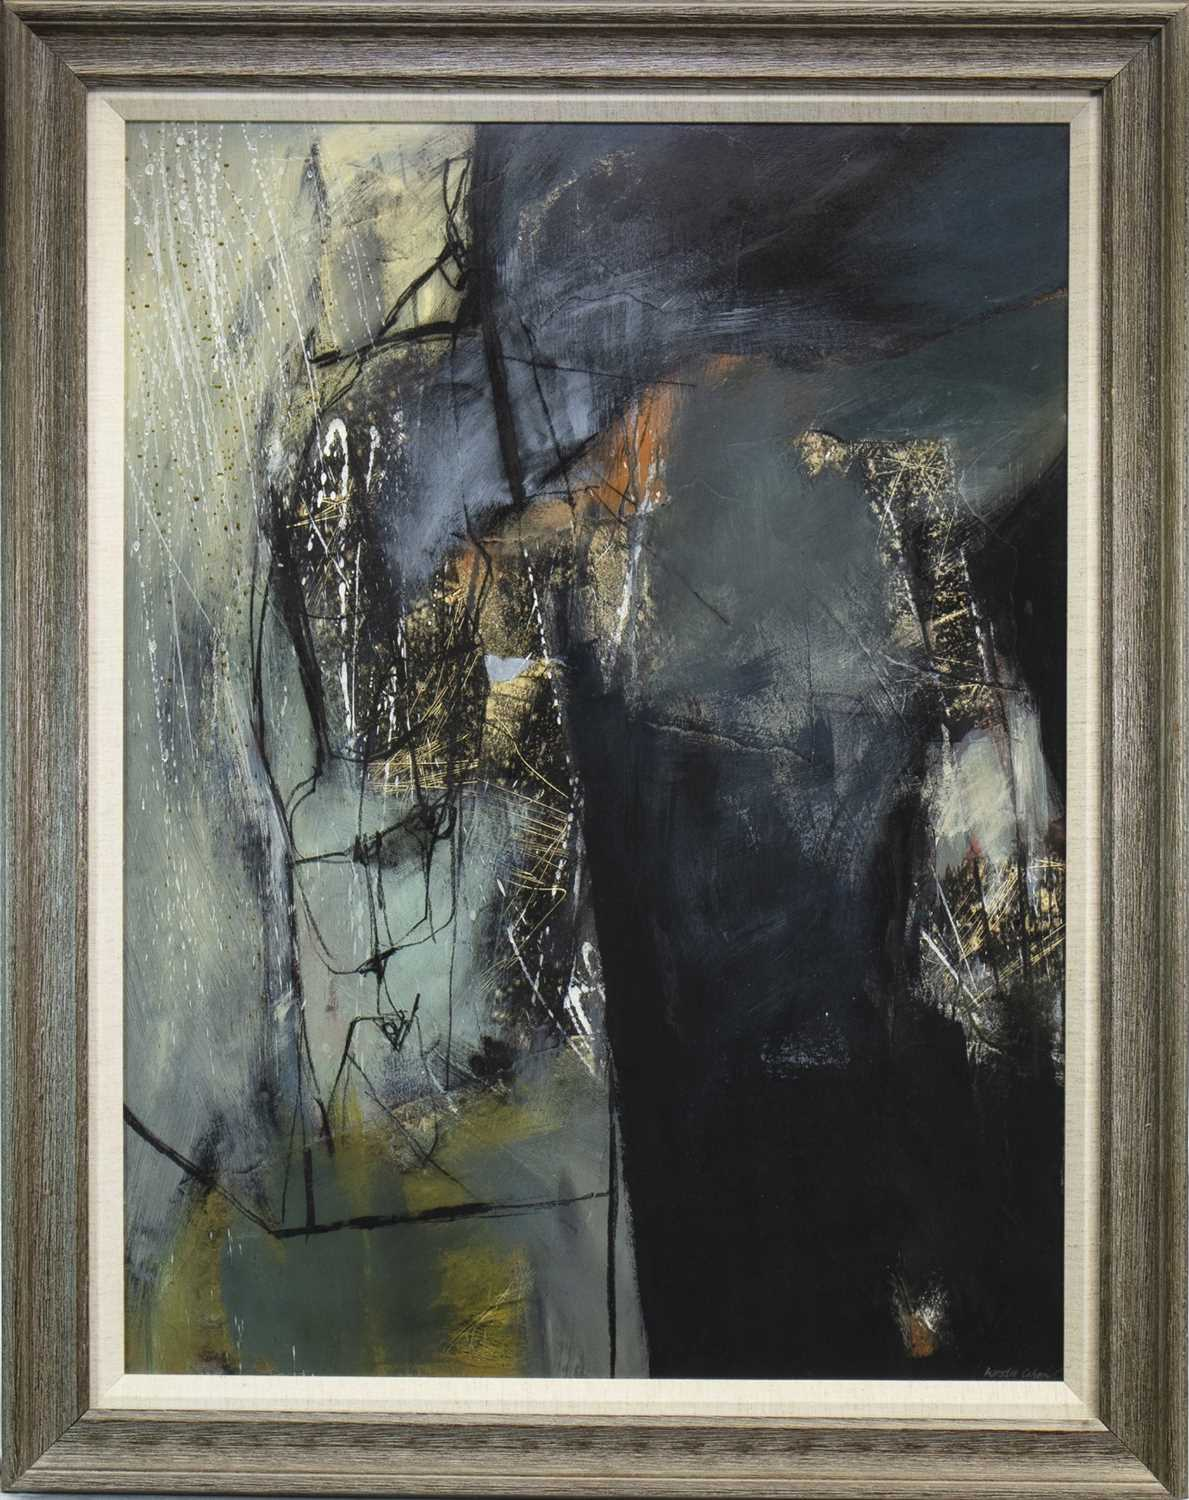 Lot 605-UNTITLED, A MIXED MEDIA BY KIRSTIE COHEN